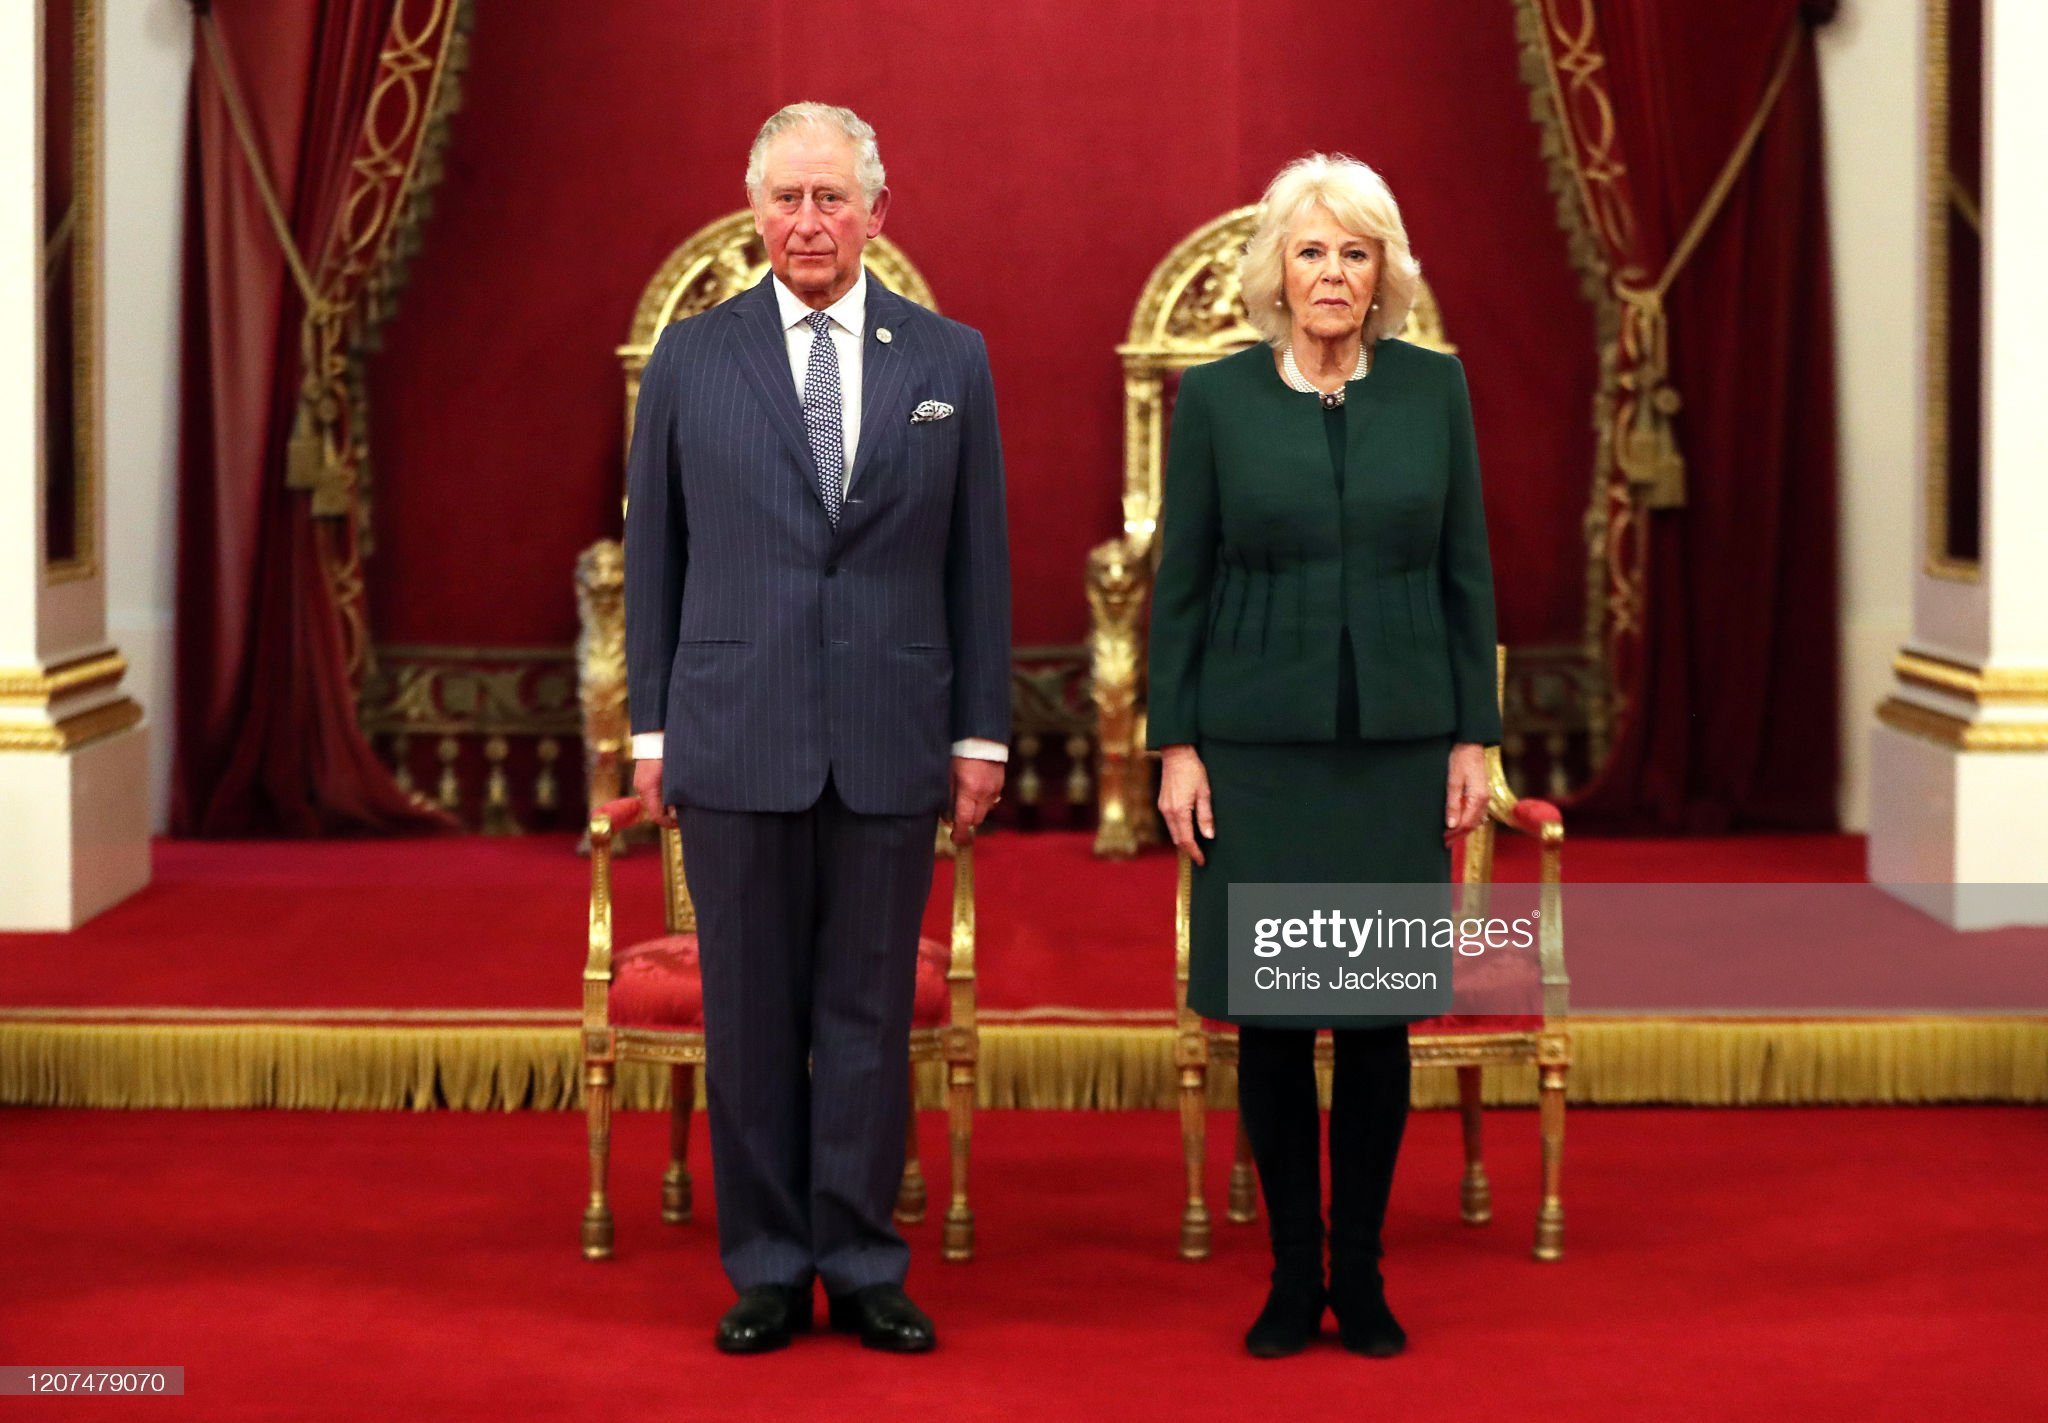 prince-charles-prince-of-wales-and-camilla-duchess-of-cornwall-pose-picture-id1207479070